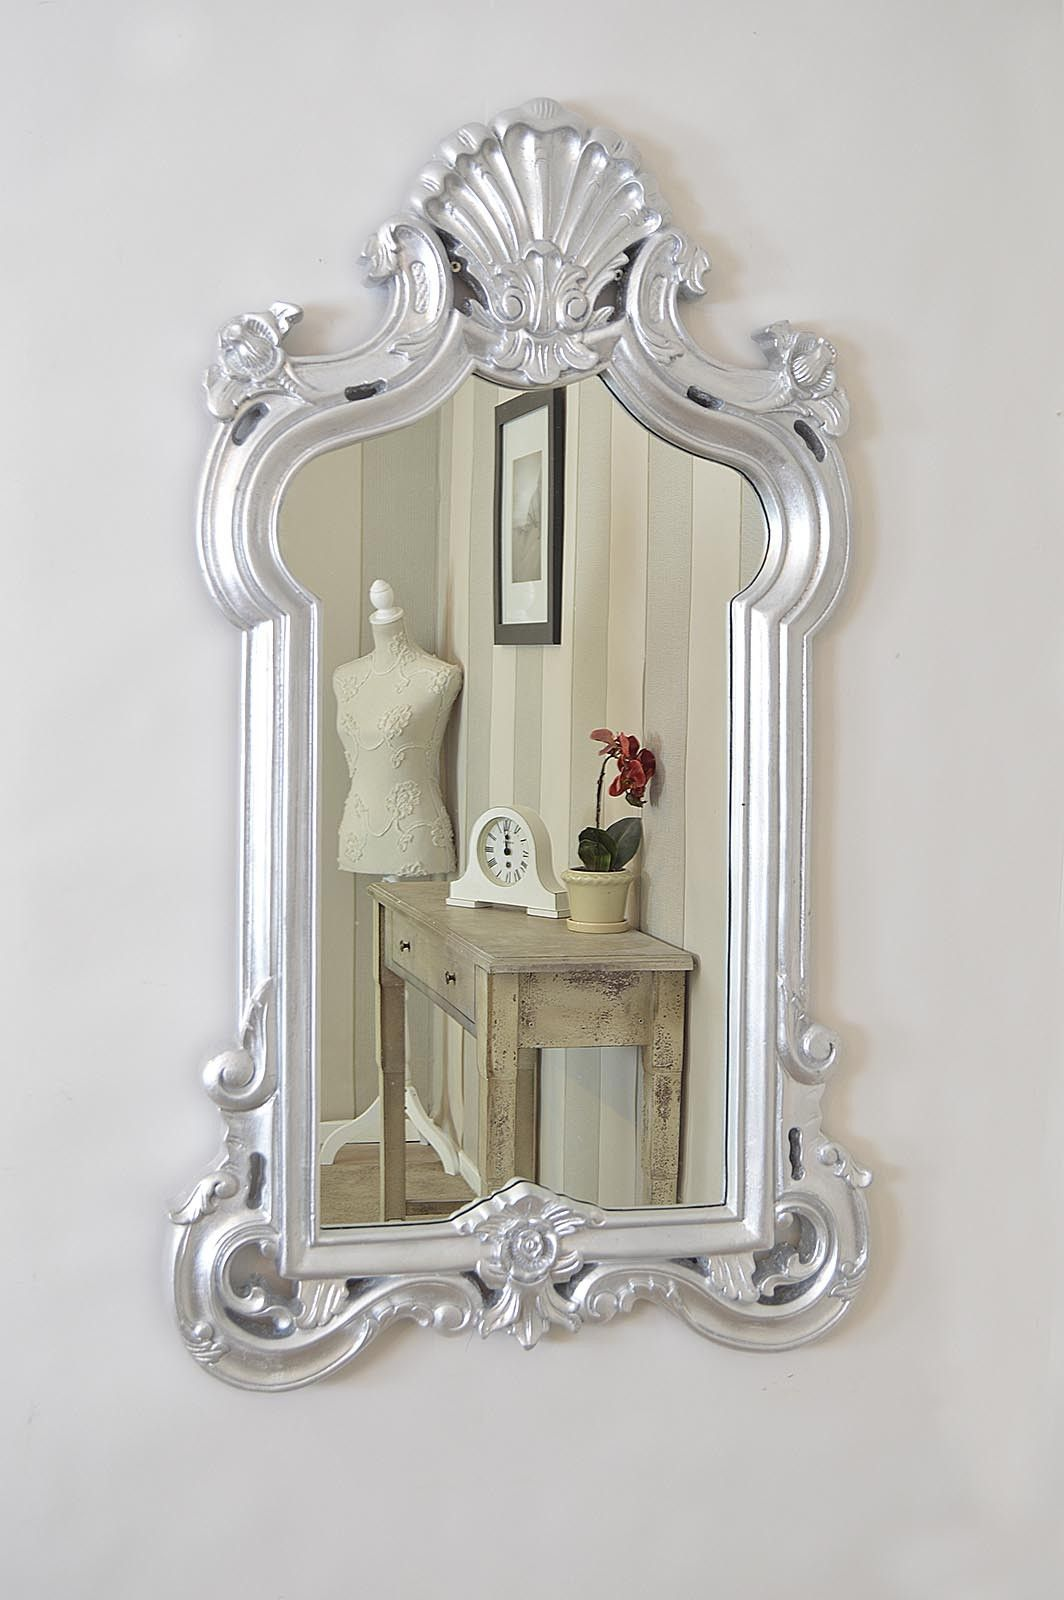 Baroque Wall Mirror large new bright silver baroque style big wall mirror 3ft11 x 2ft4